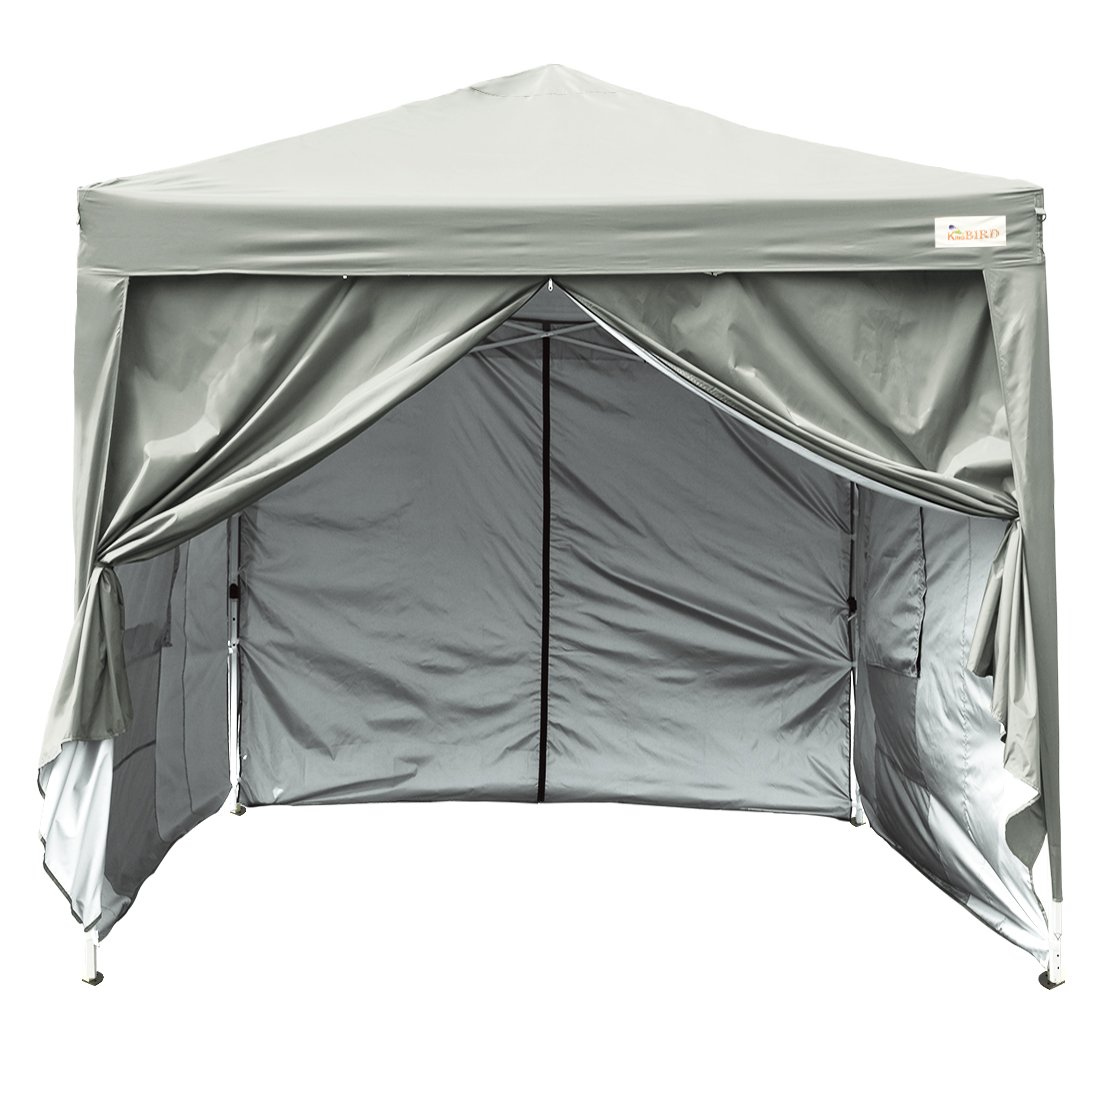 Kingbird 10 x 10 ft Easy Pop up Canopy Waterproof Party Tent 4 Removable Walls Mesh Windows with Carry Bag-7 Colors (Grey)